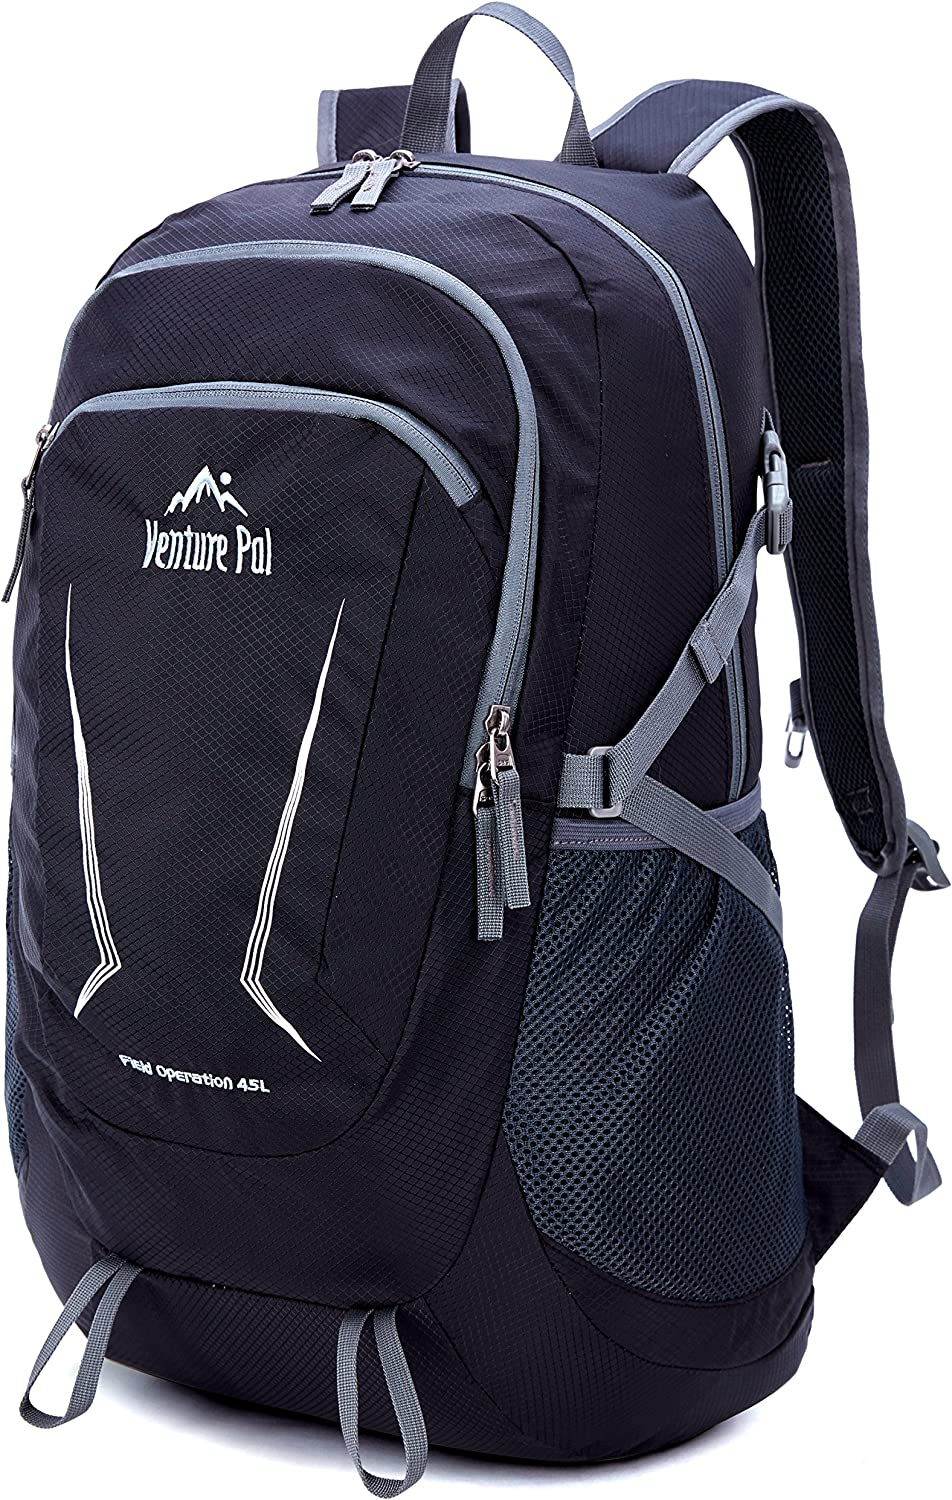 Venture Pal Large 45L Hiking Backpack – Packable Lightweight Travel Backpack Daypack